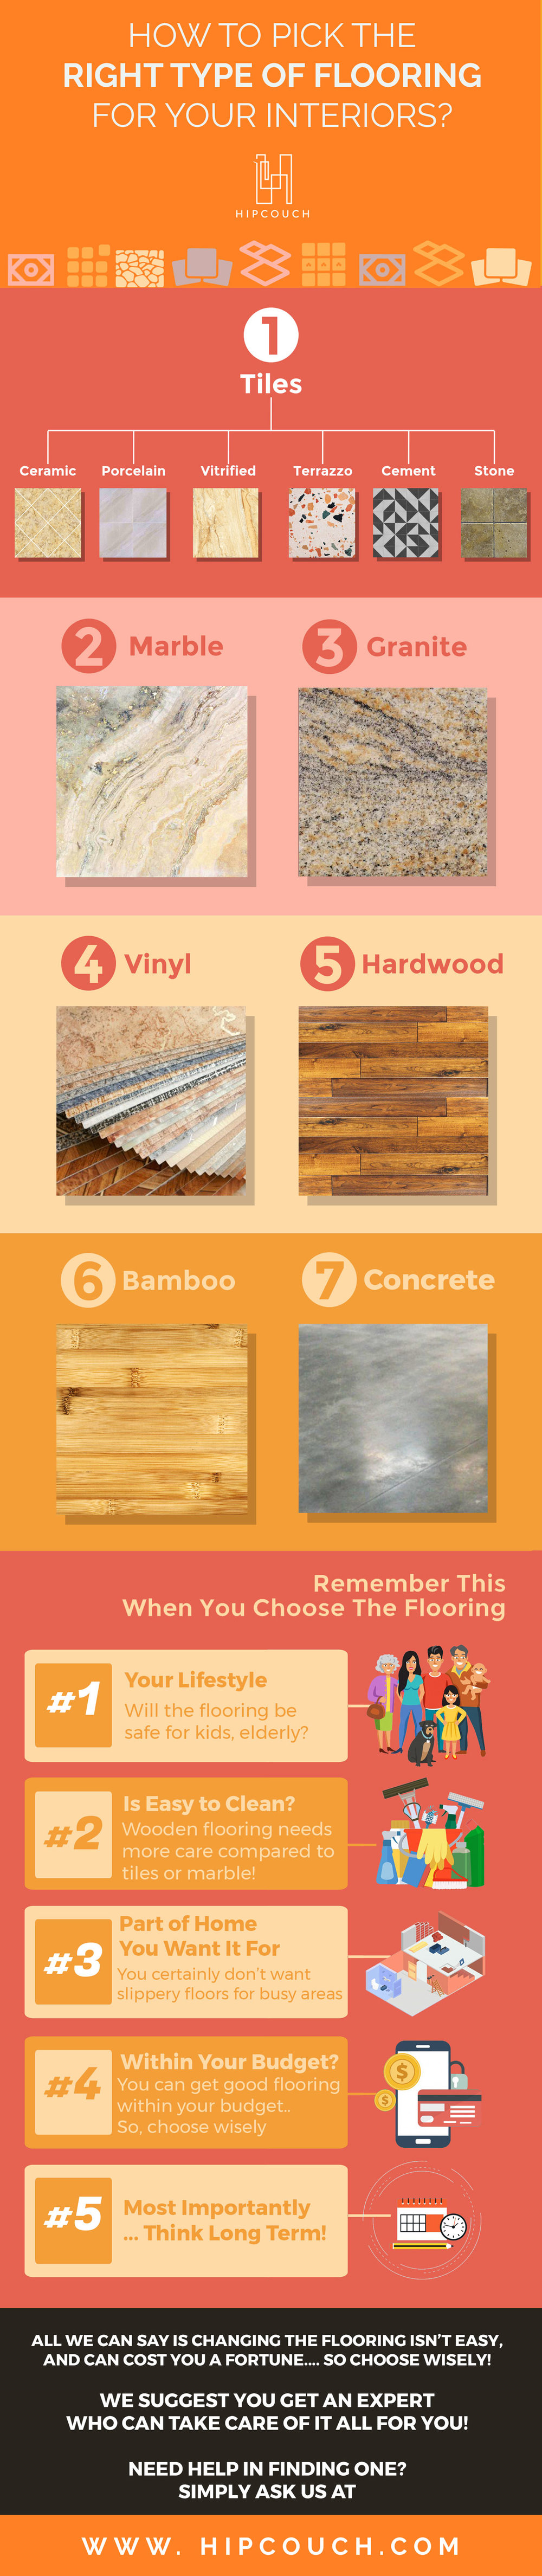 types-of-flooring-to-pick-from---Infographic.jpg